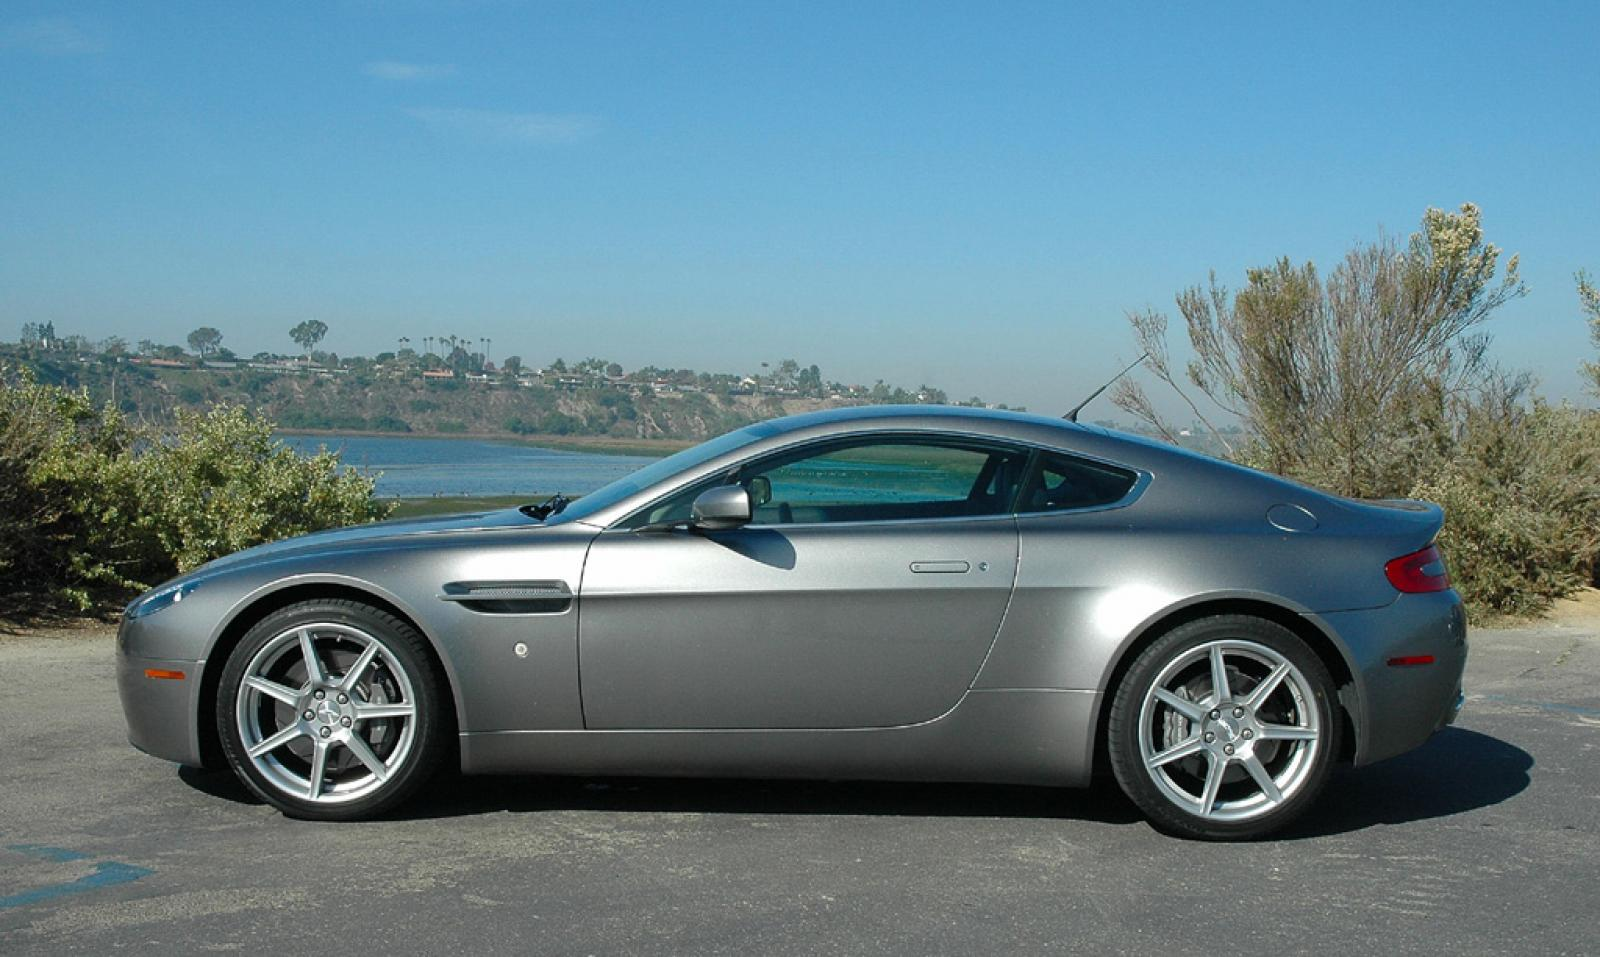 2006 aston martin v8 vantage information and photos zombiedrive. Black Bedroom Furniture Sets. Home Design Ideas